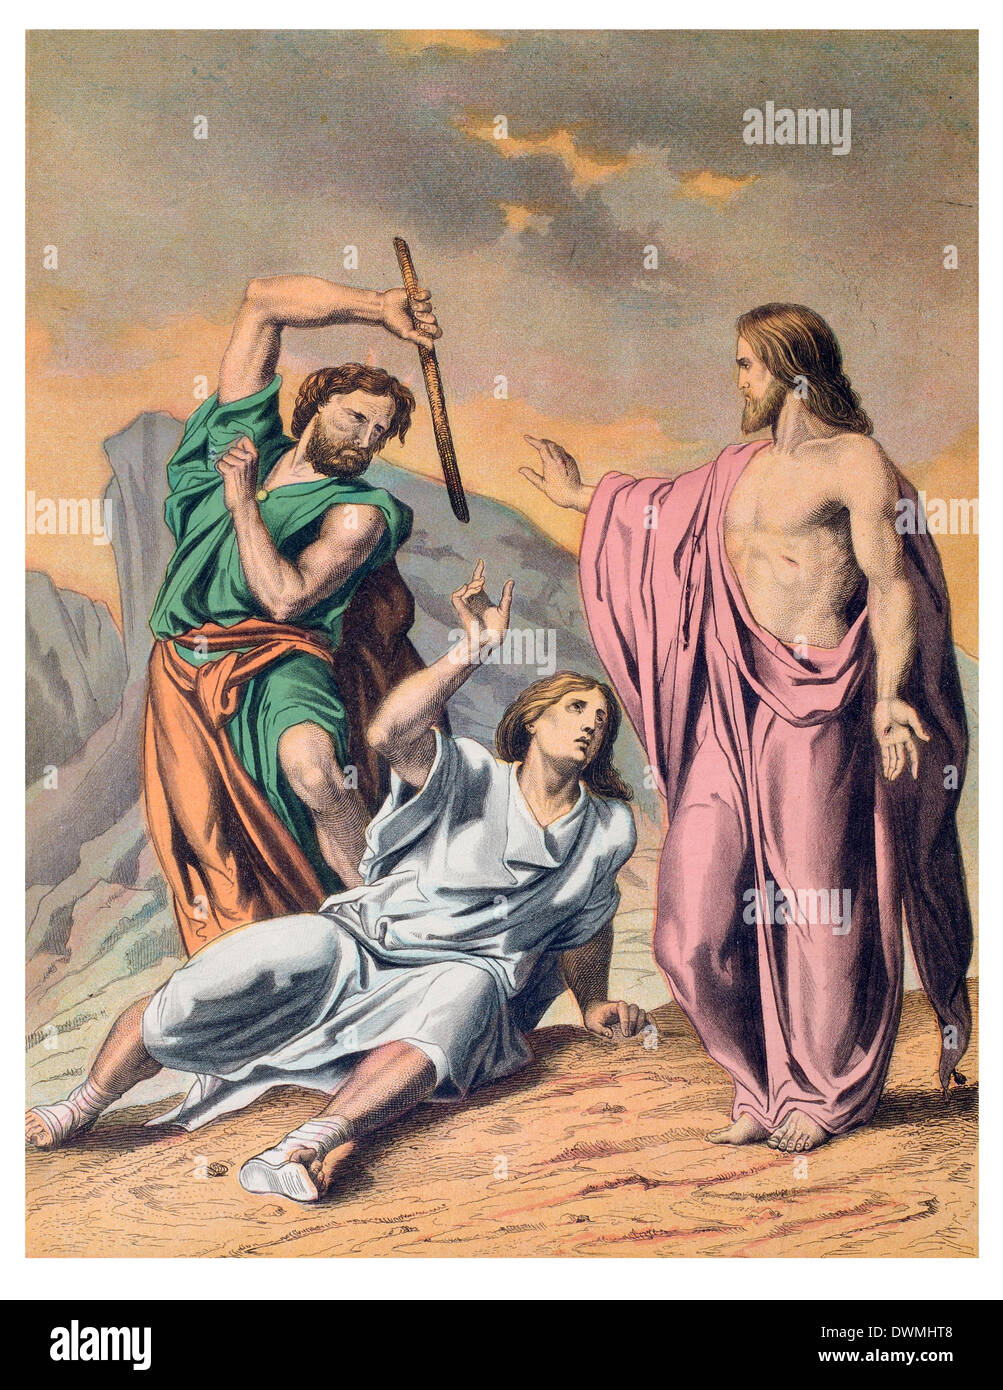 The Law Moses, the Sinner, and the Saviour - Stock Image